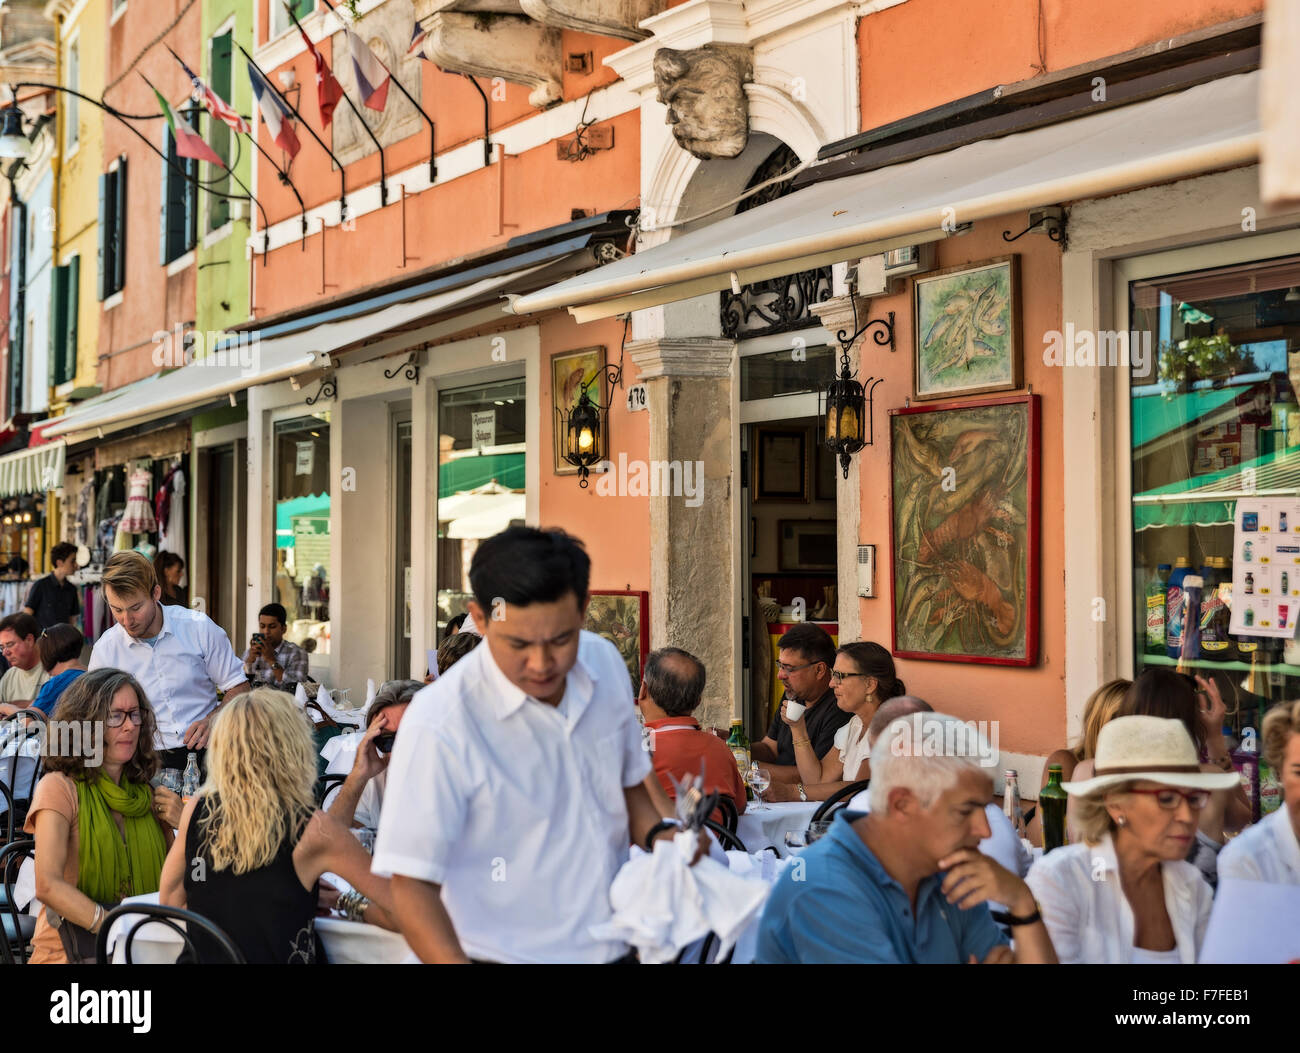 Patrons at an outdoor cafe restaurant, Burano, Venice, Italy - Stock Image